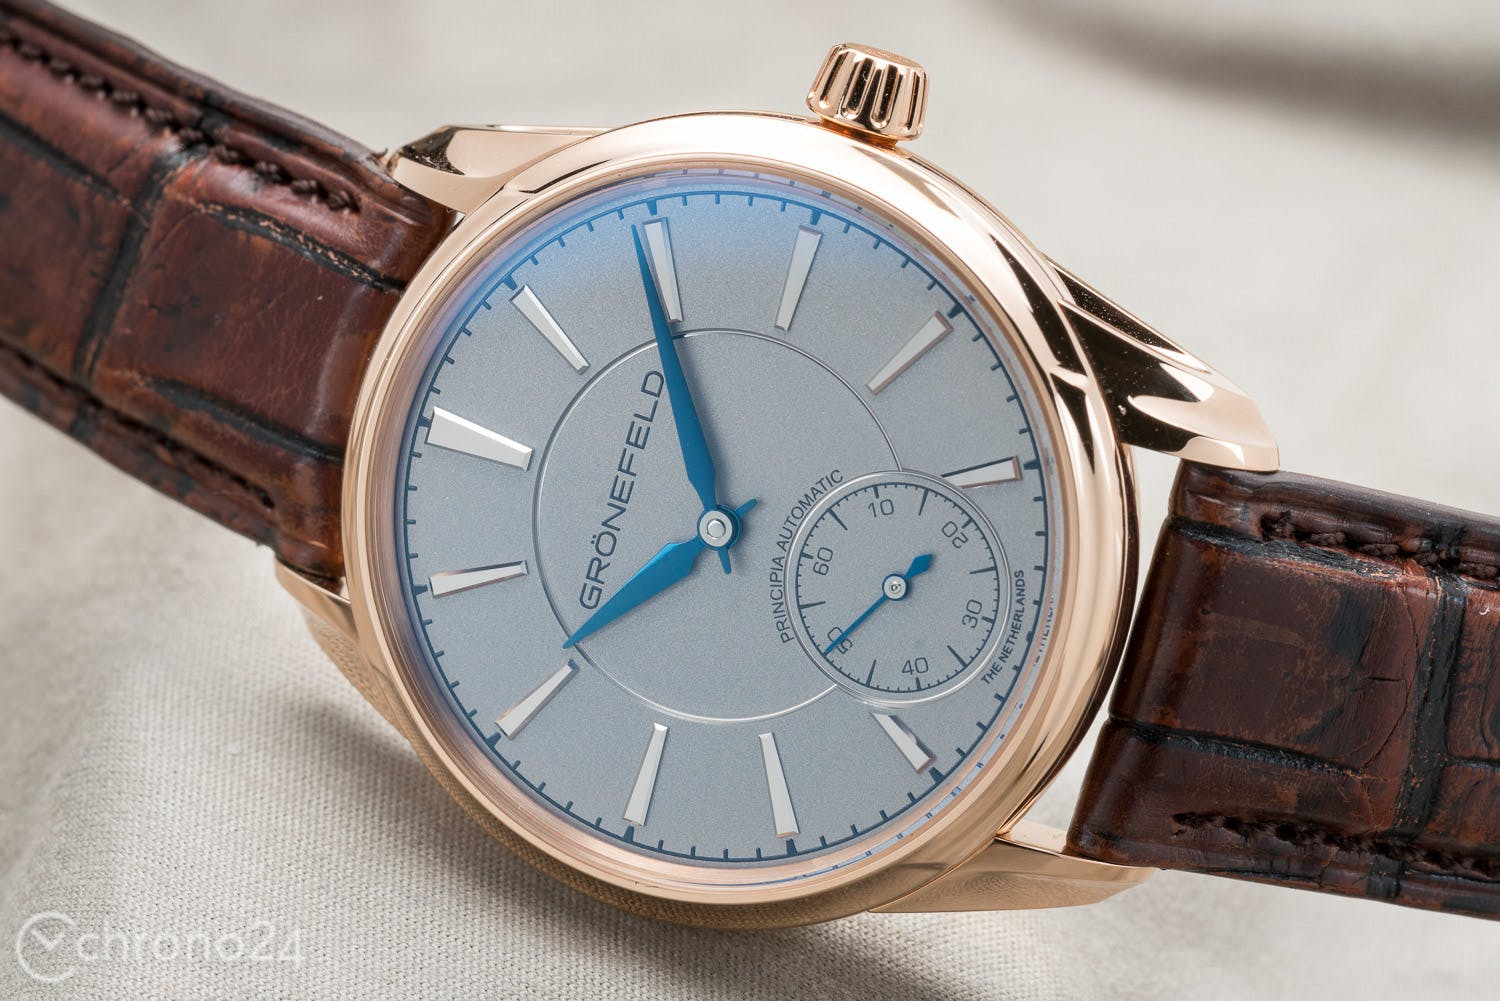 Our Top 3 High-End Watches from Non-Swiss Brands